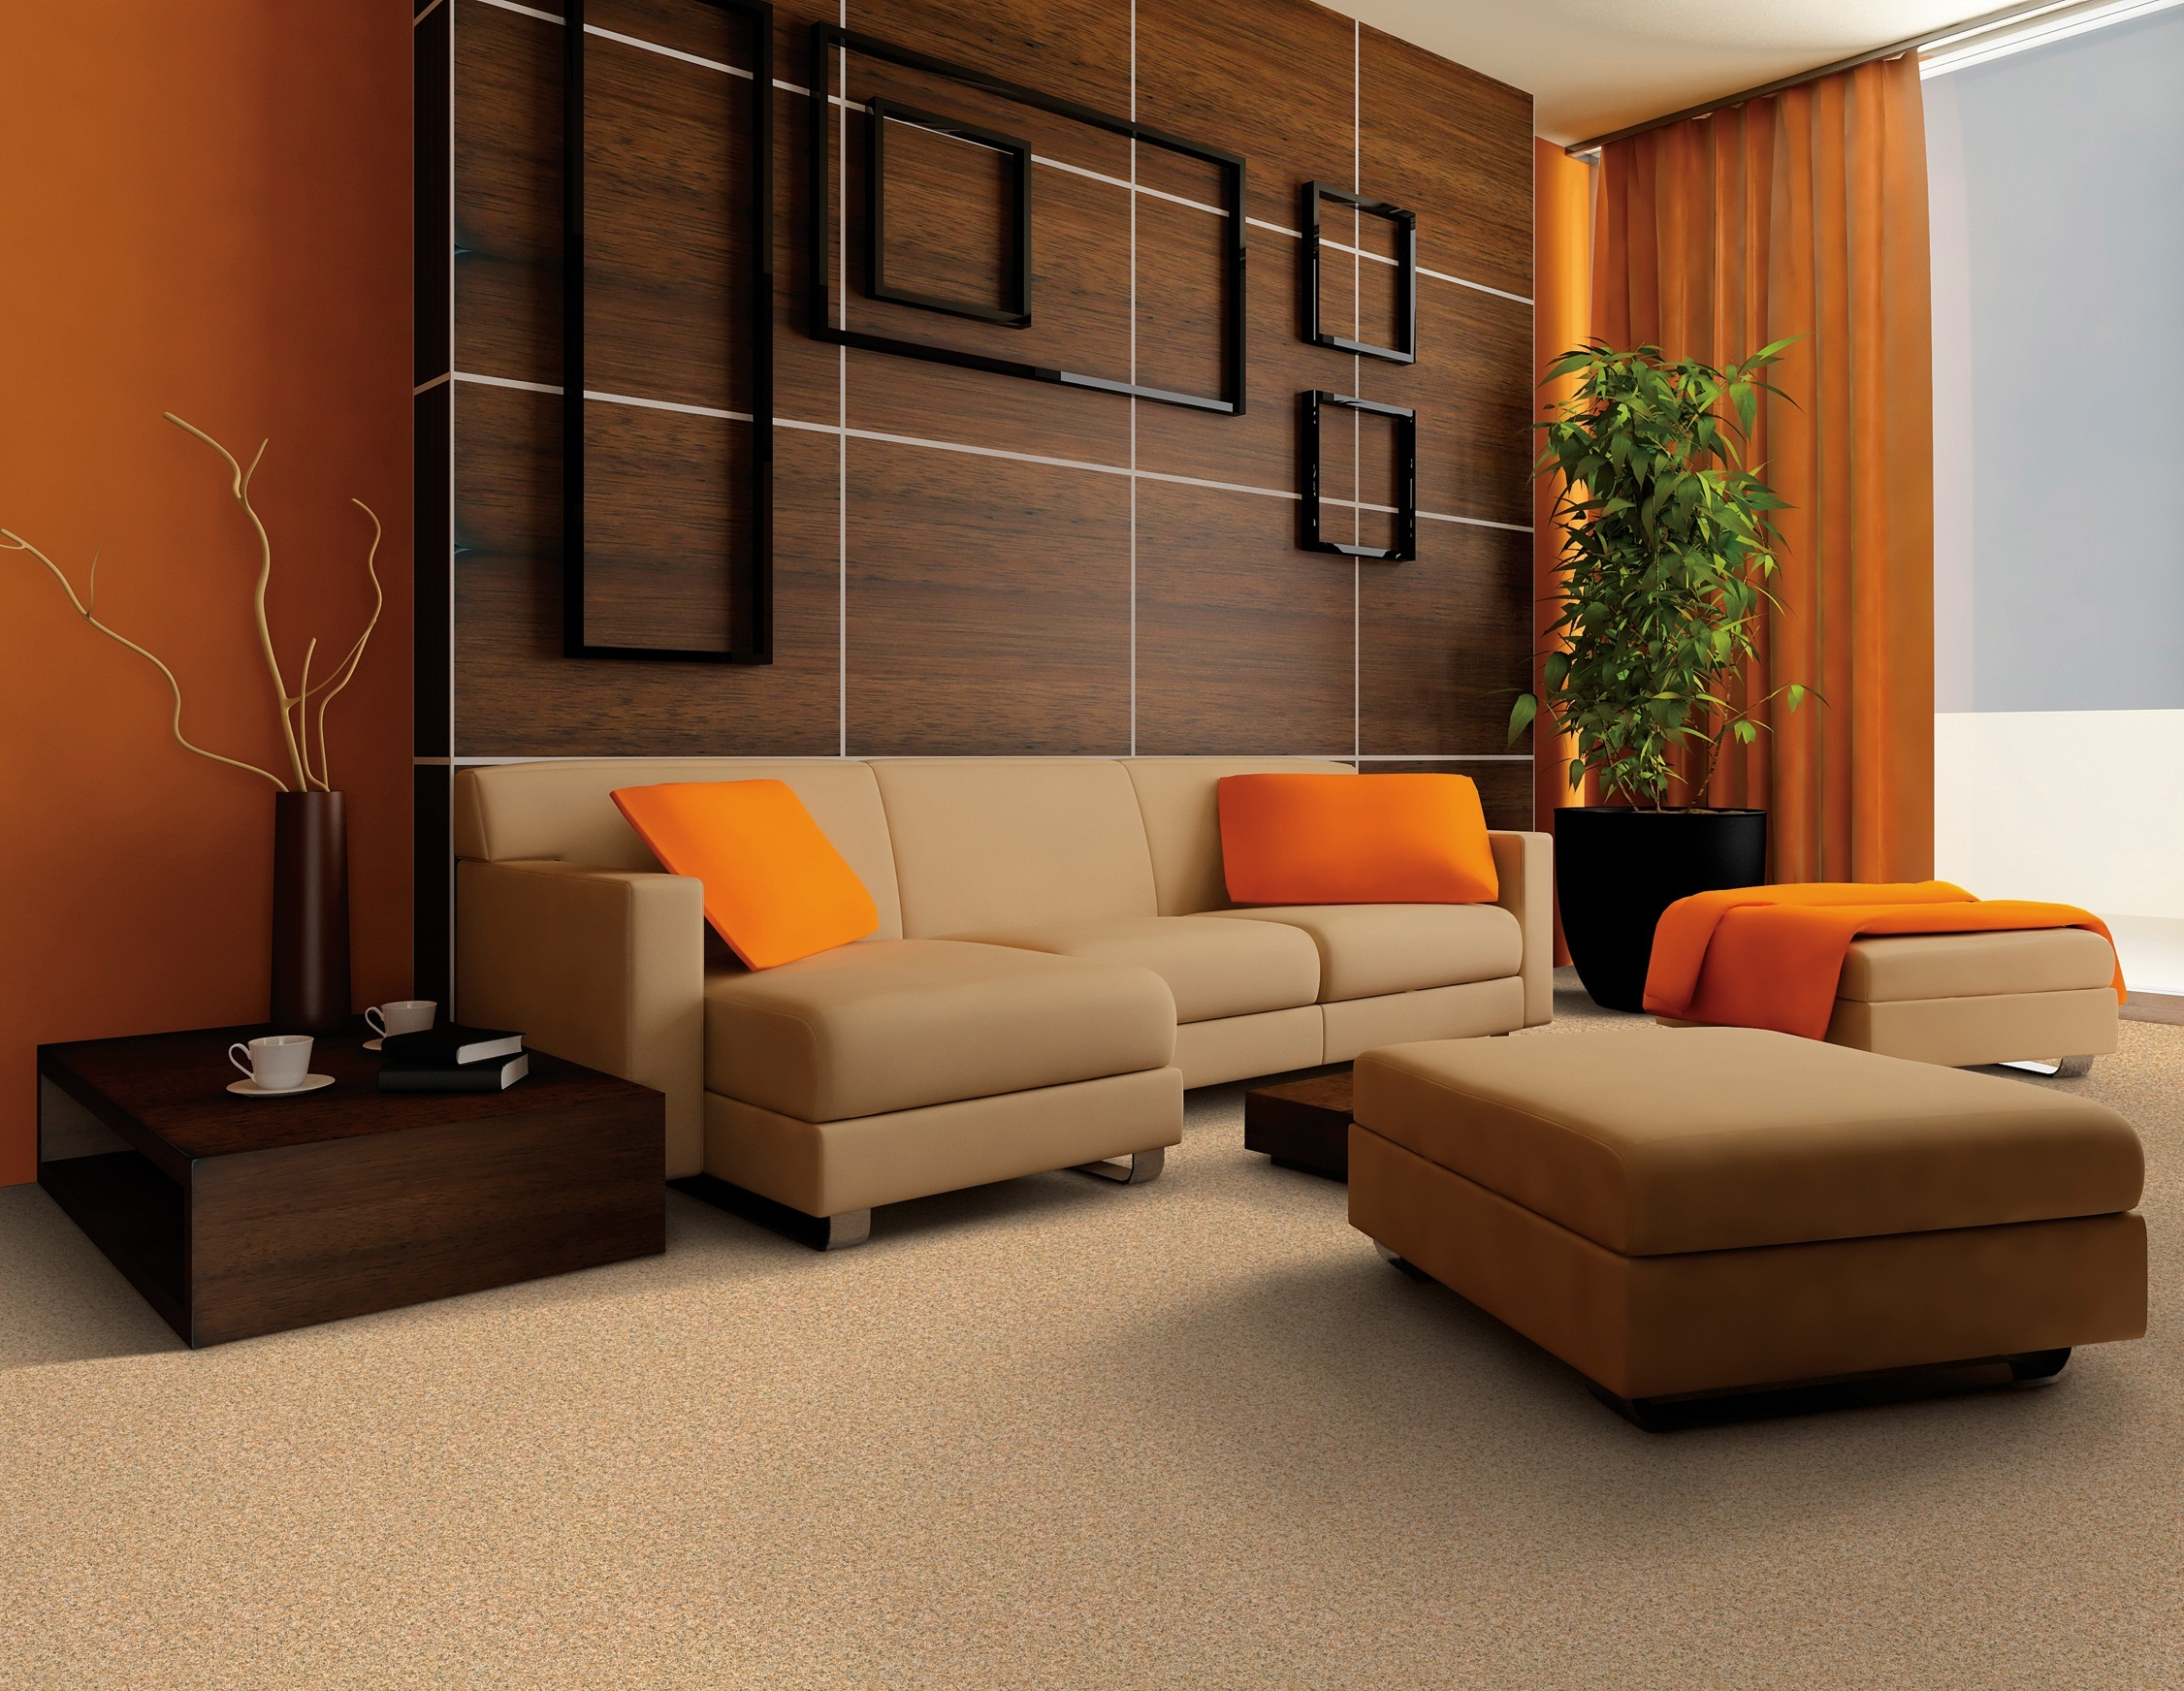 Most common interior design living room mistakes to avoid for Living room interior bangalore